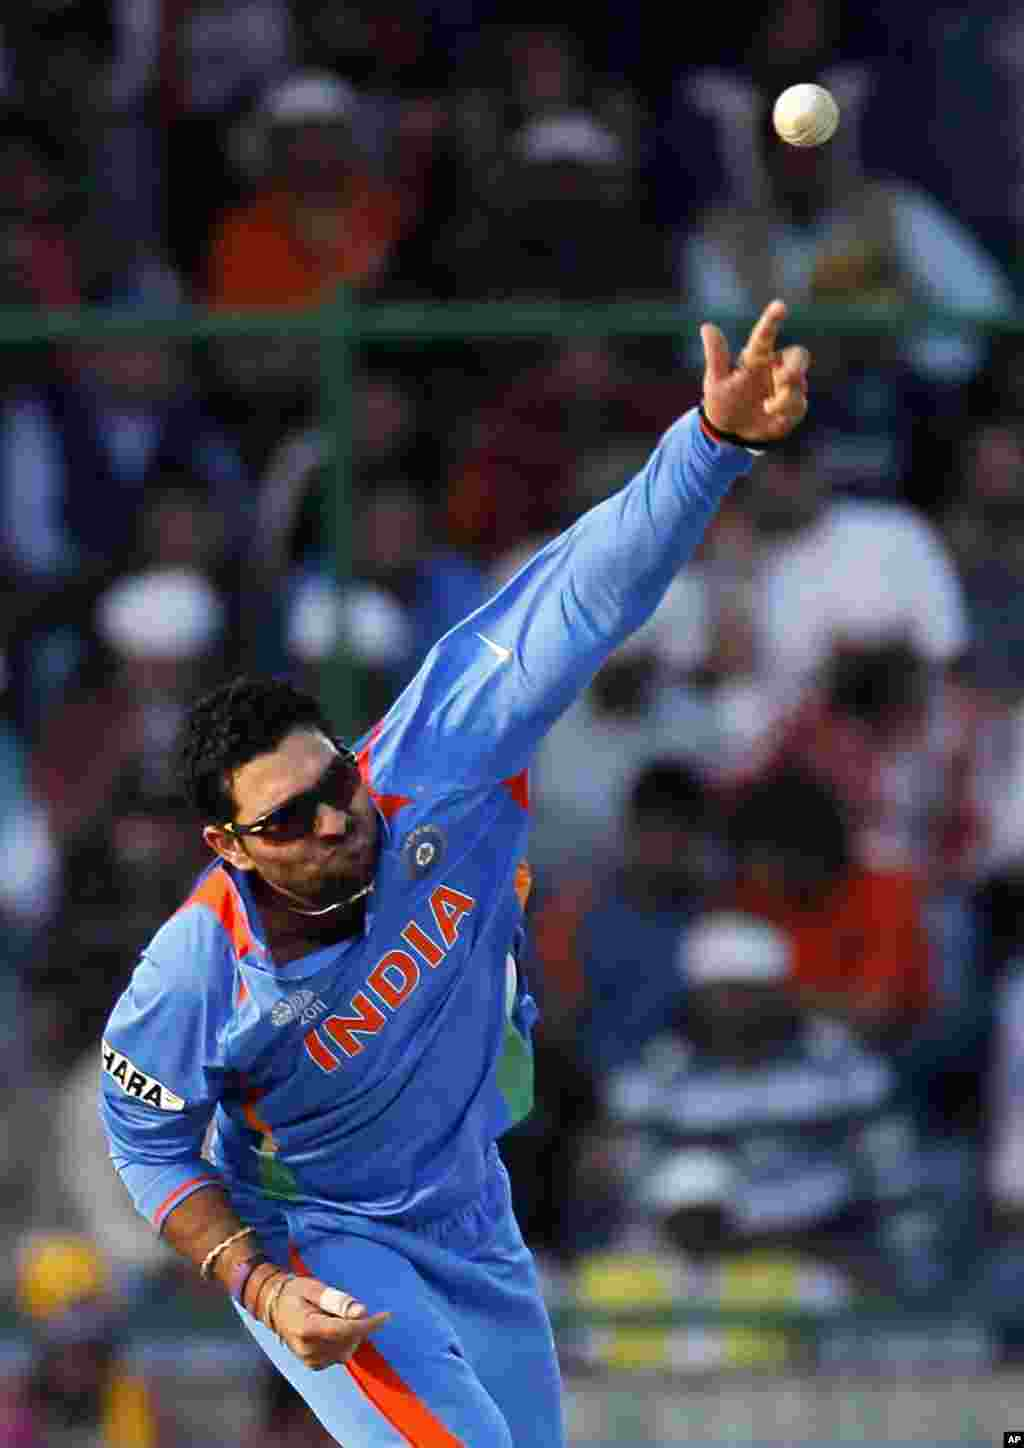 India's Yuvraj Singh dives bowls during their ICC Cricket World Cup group B match against The Netherlands in New Delhi March 9, 2011. REUTERS/Adnan Abidi (INDIA - Tags: SPORT CRICKET)